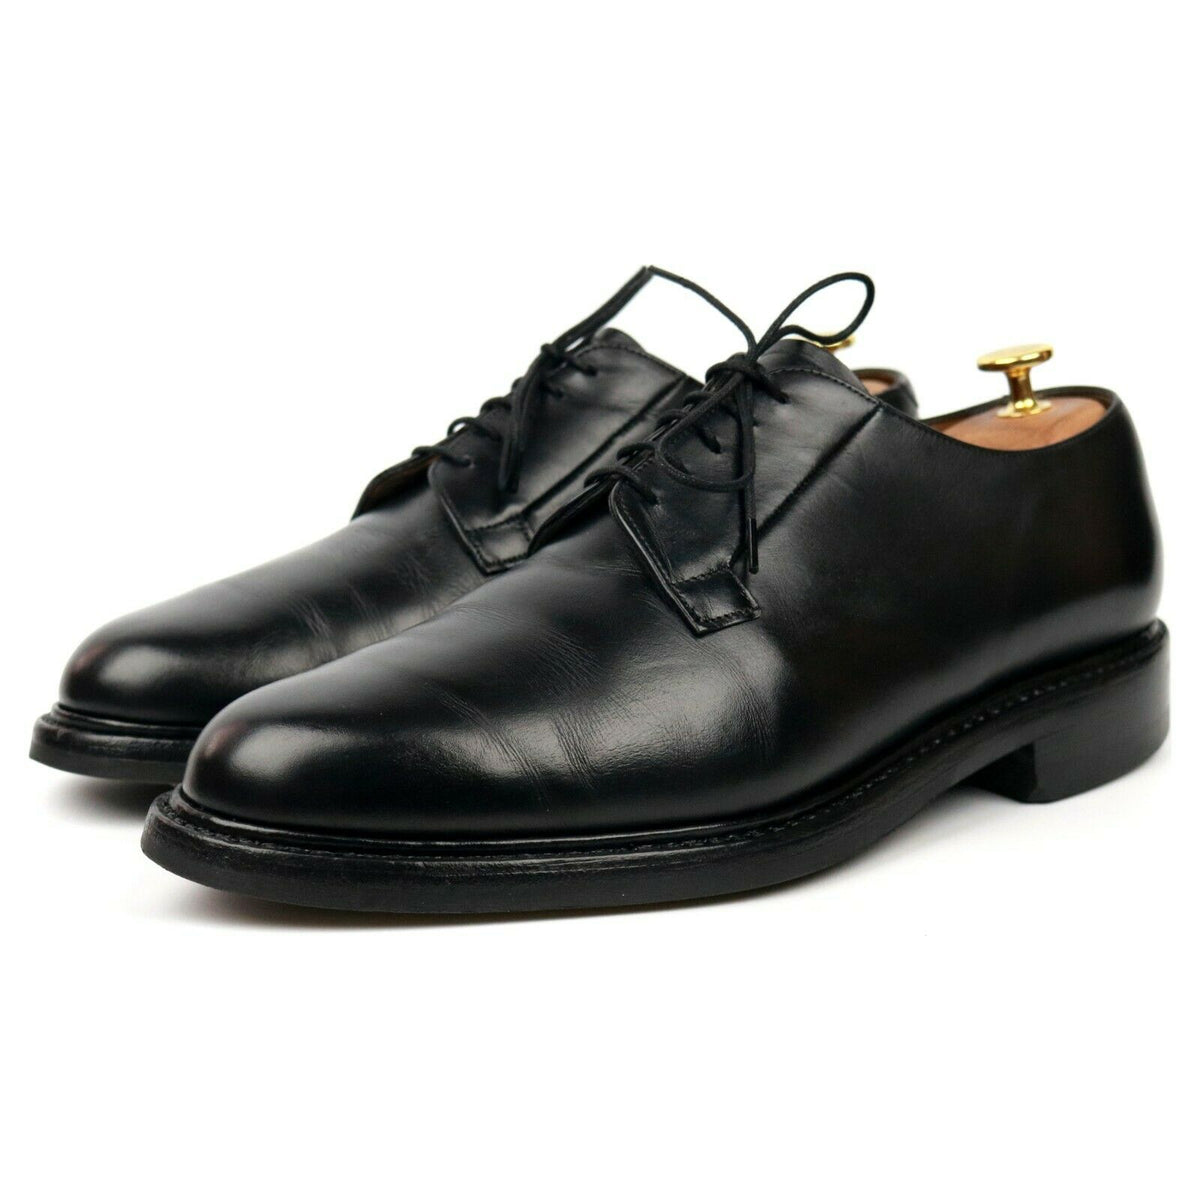 Cheaney 'Deal' Black Leather Derby UK 9 F